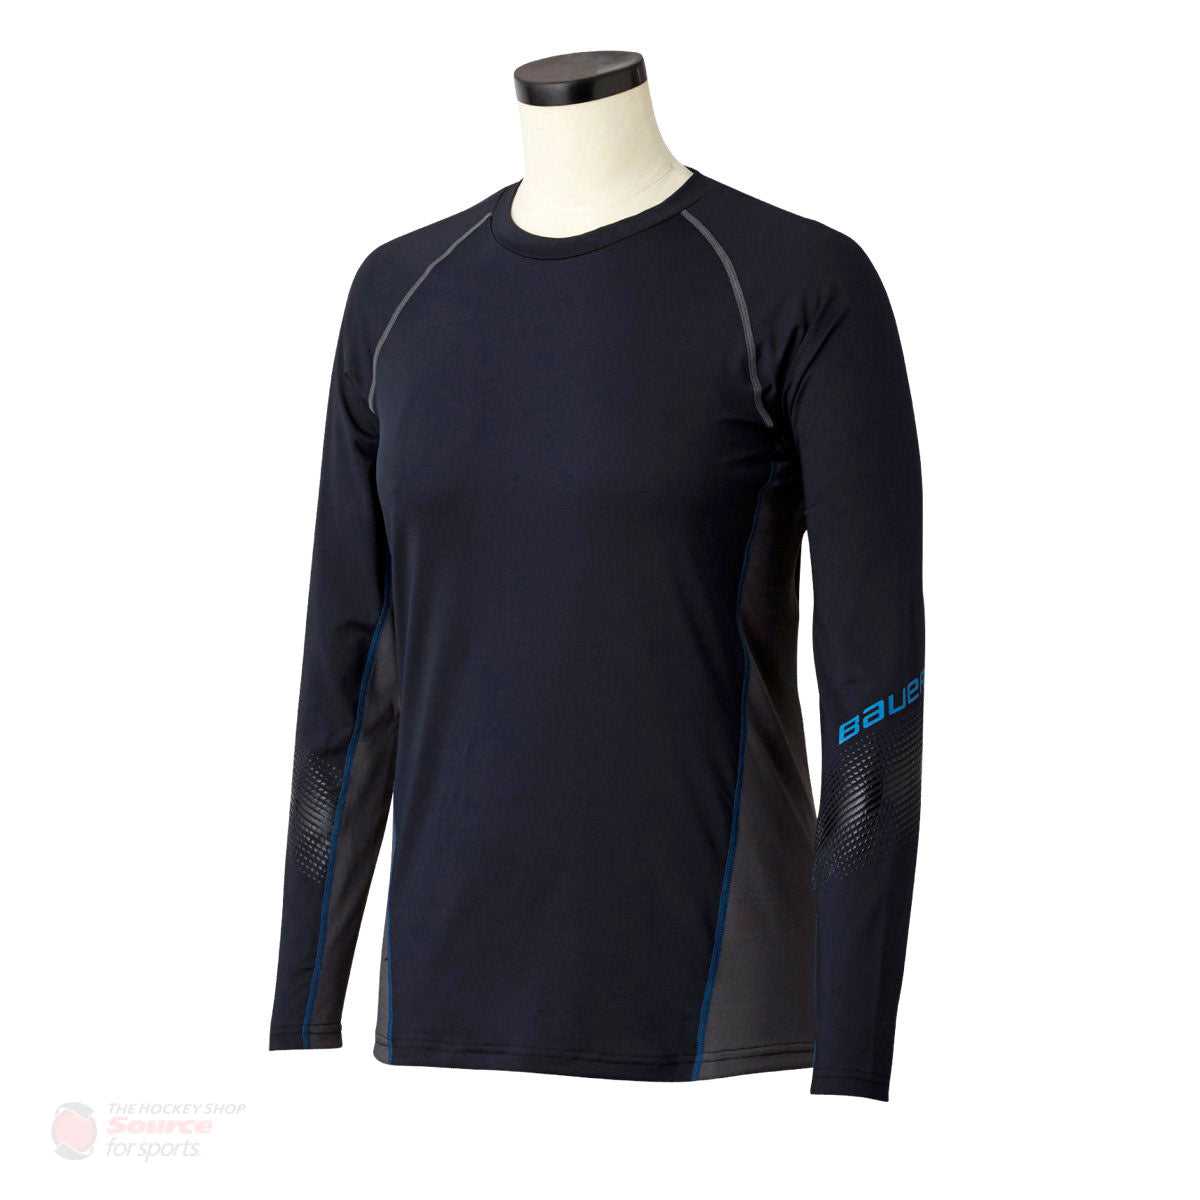 Bauer Long Sleeve Women's Baselayer Shirt